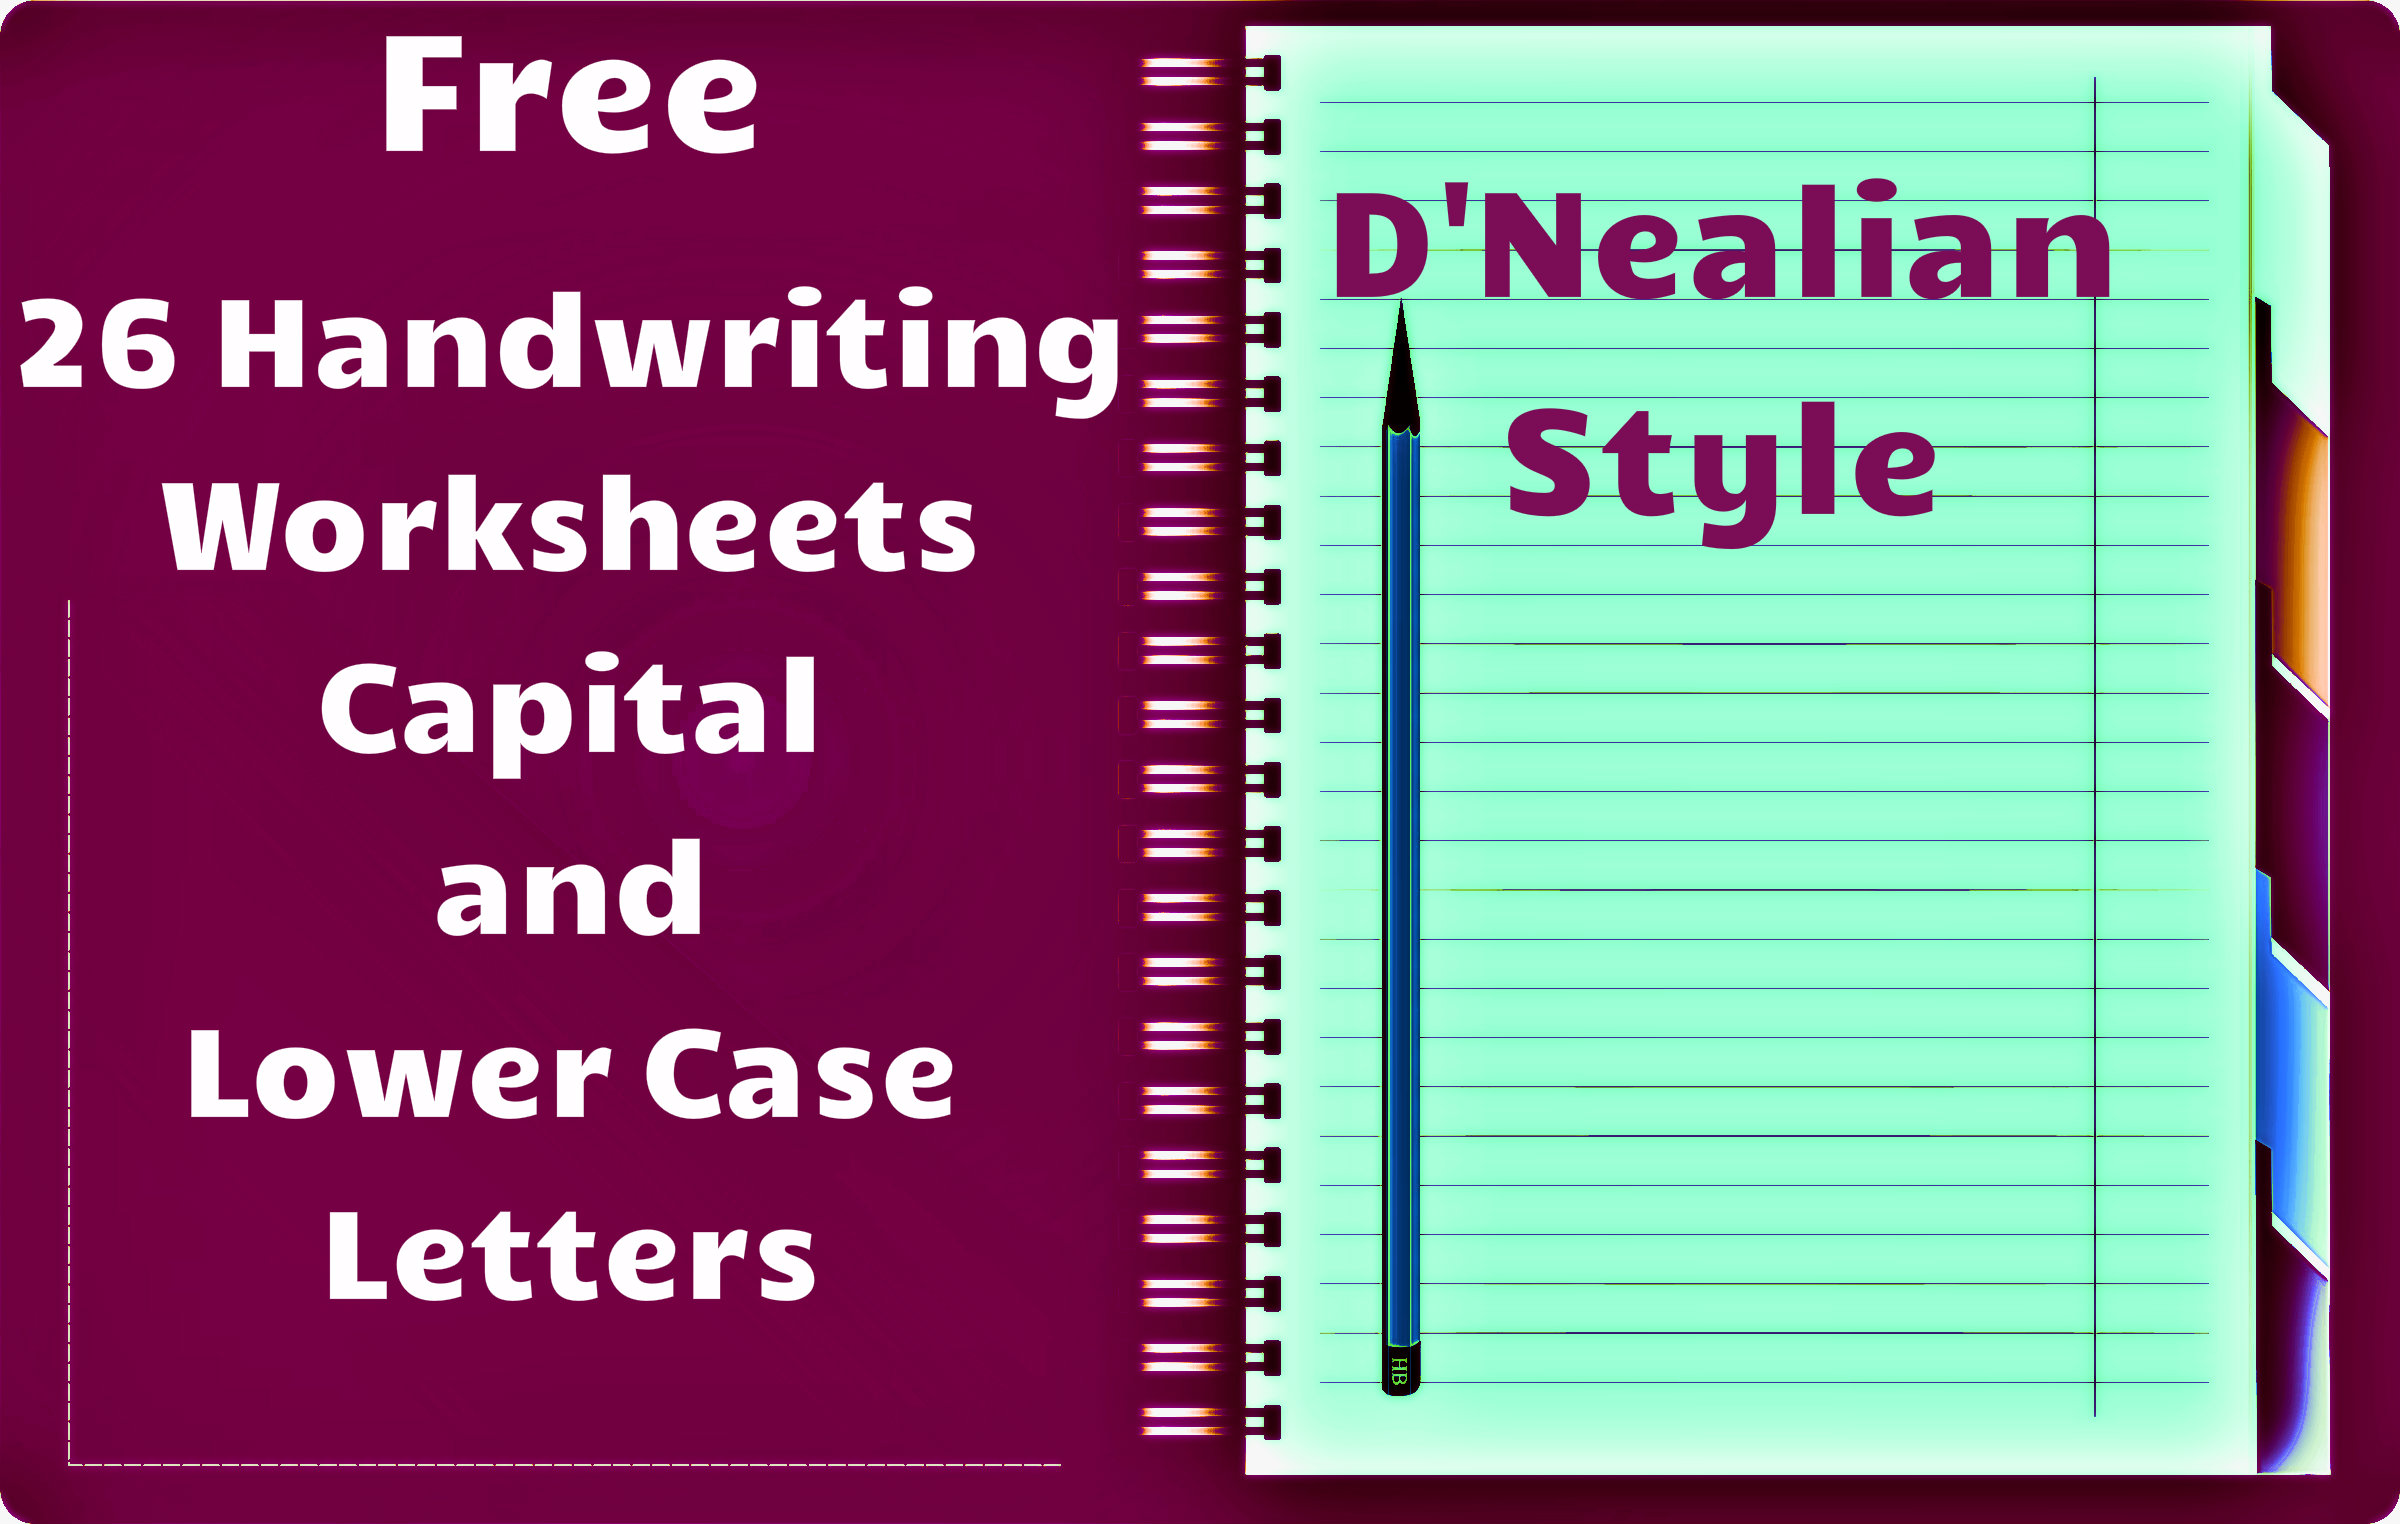 Worksheets Kindergarten Handwriting Worksheet Maker free handwriting worksheets dnealian style